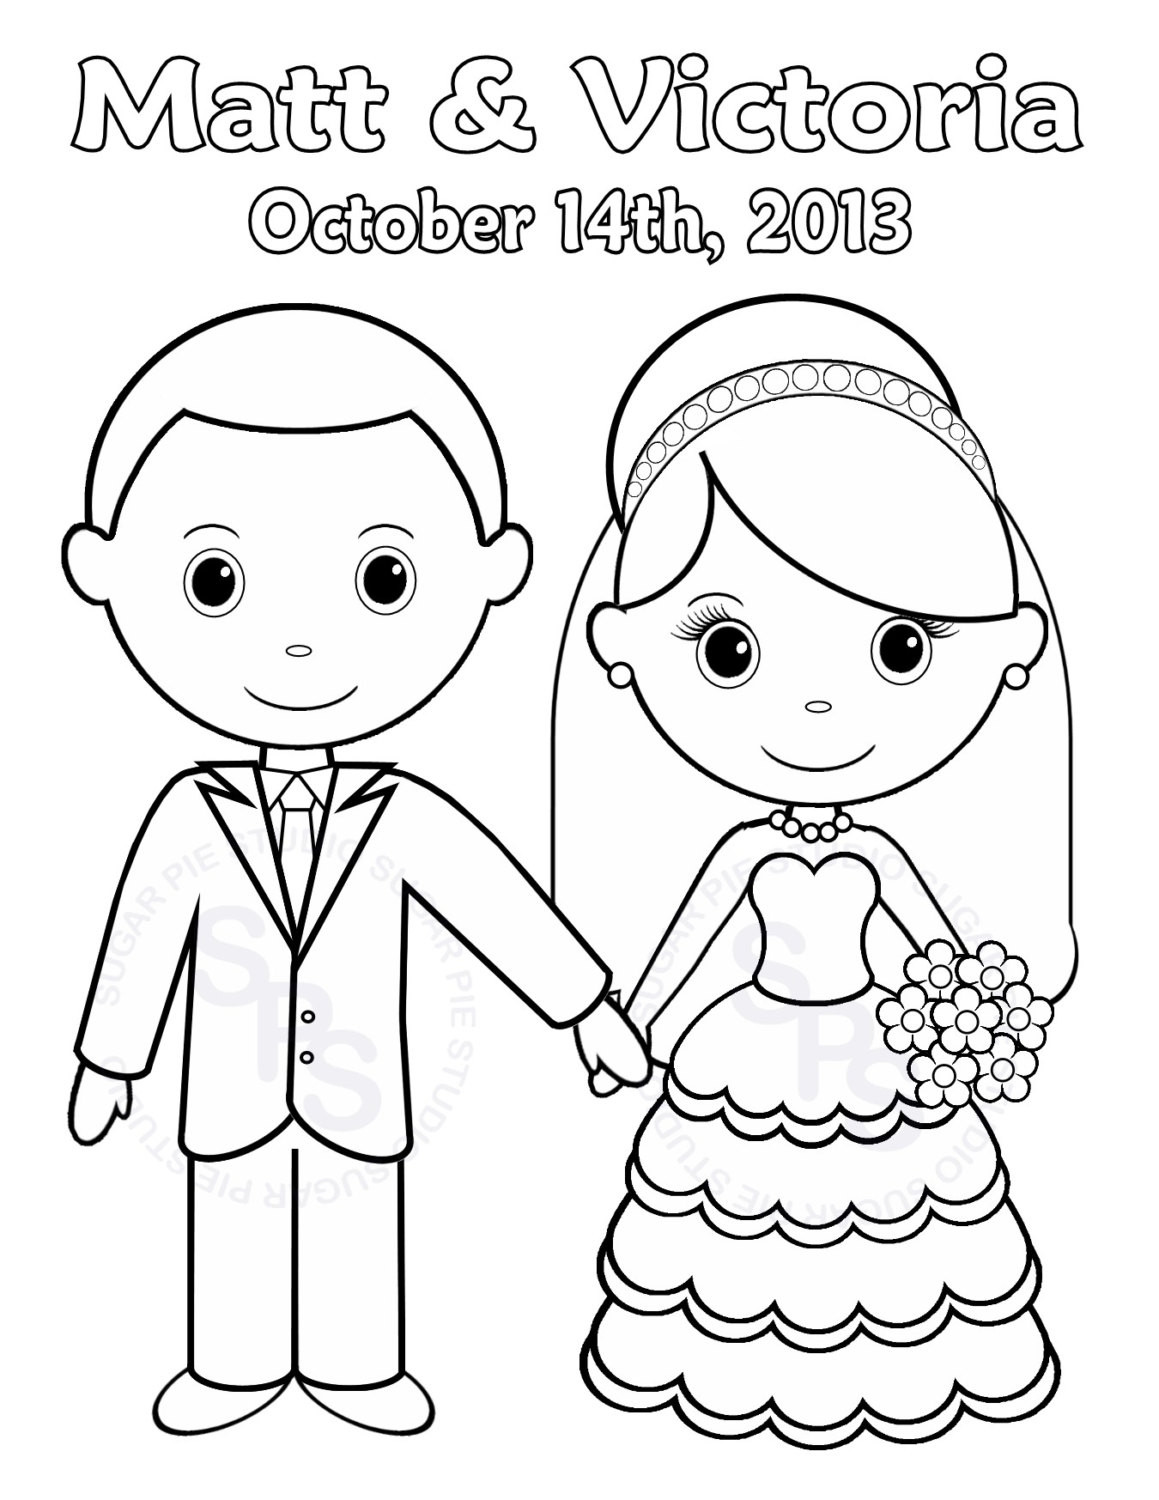 Bride Coloring Pages  Wedding Cartoon Drawing at GetDrawings